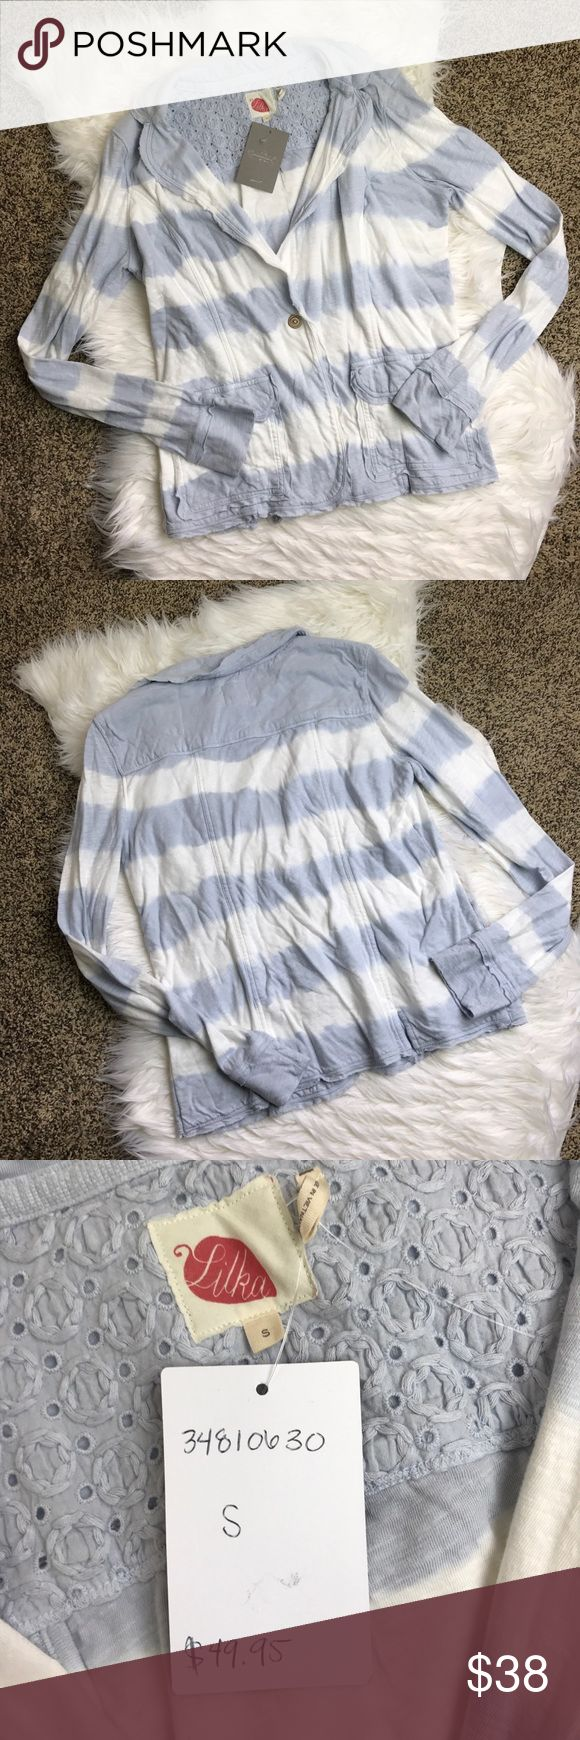 [Anthropologie] NWT Lilka Banded Stripe Blazer 'Lilka Banded Stripes Blazer'. Cute light blue and white blazer by lilka. Subtle tie-dye stripes and raw trim make this blazer so cute. The front has flap pockets. Soft jersey material. New With Tags. Anthropologie Jackets & Coats Blazers